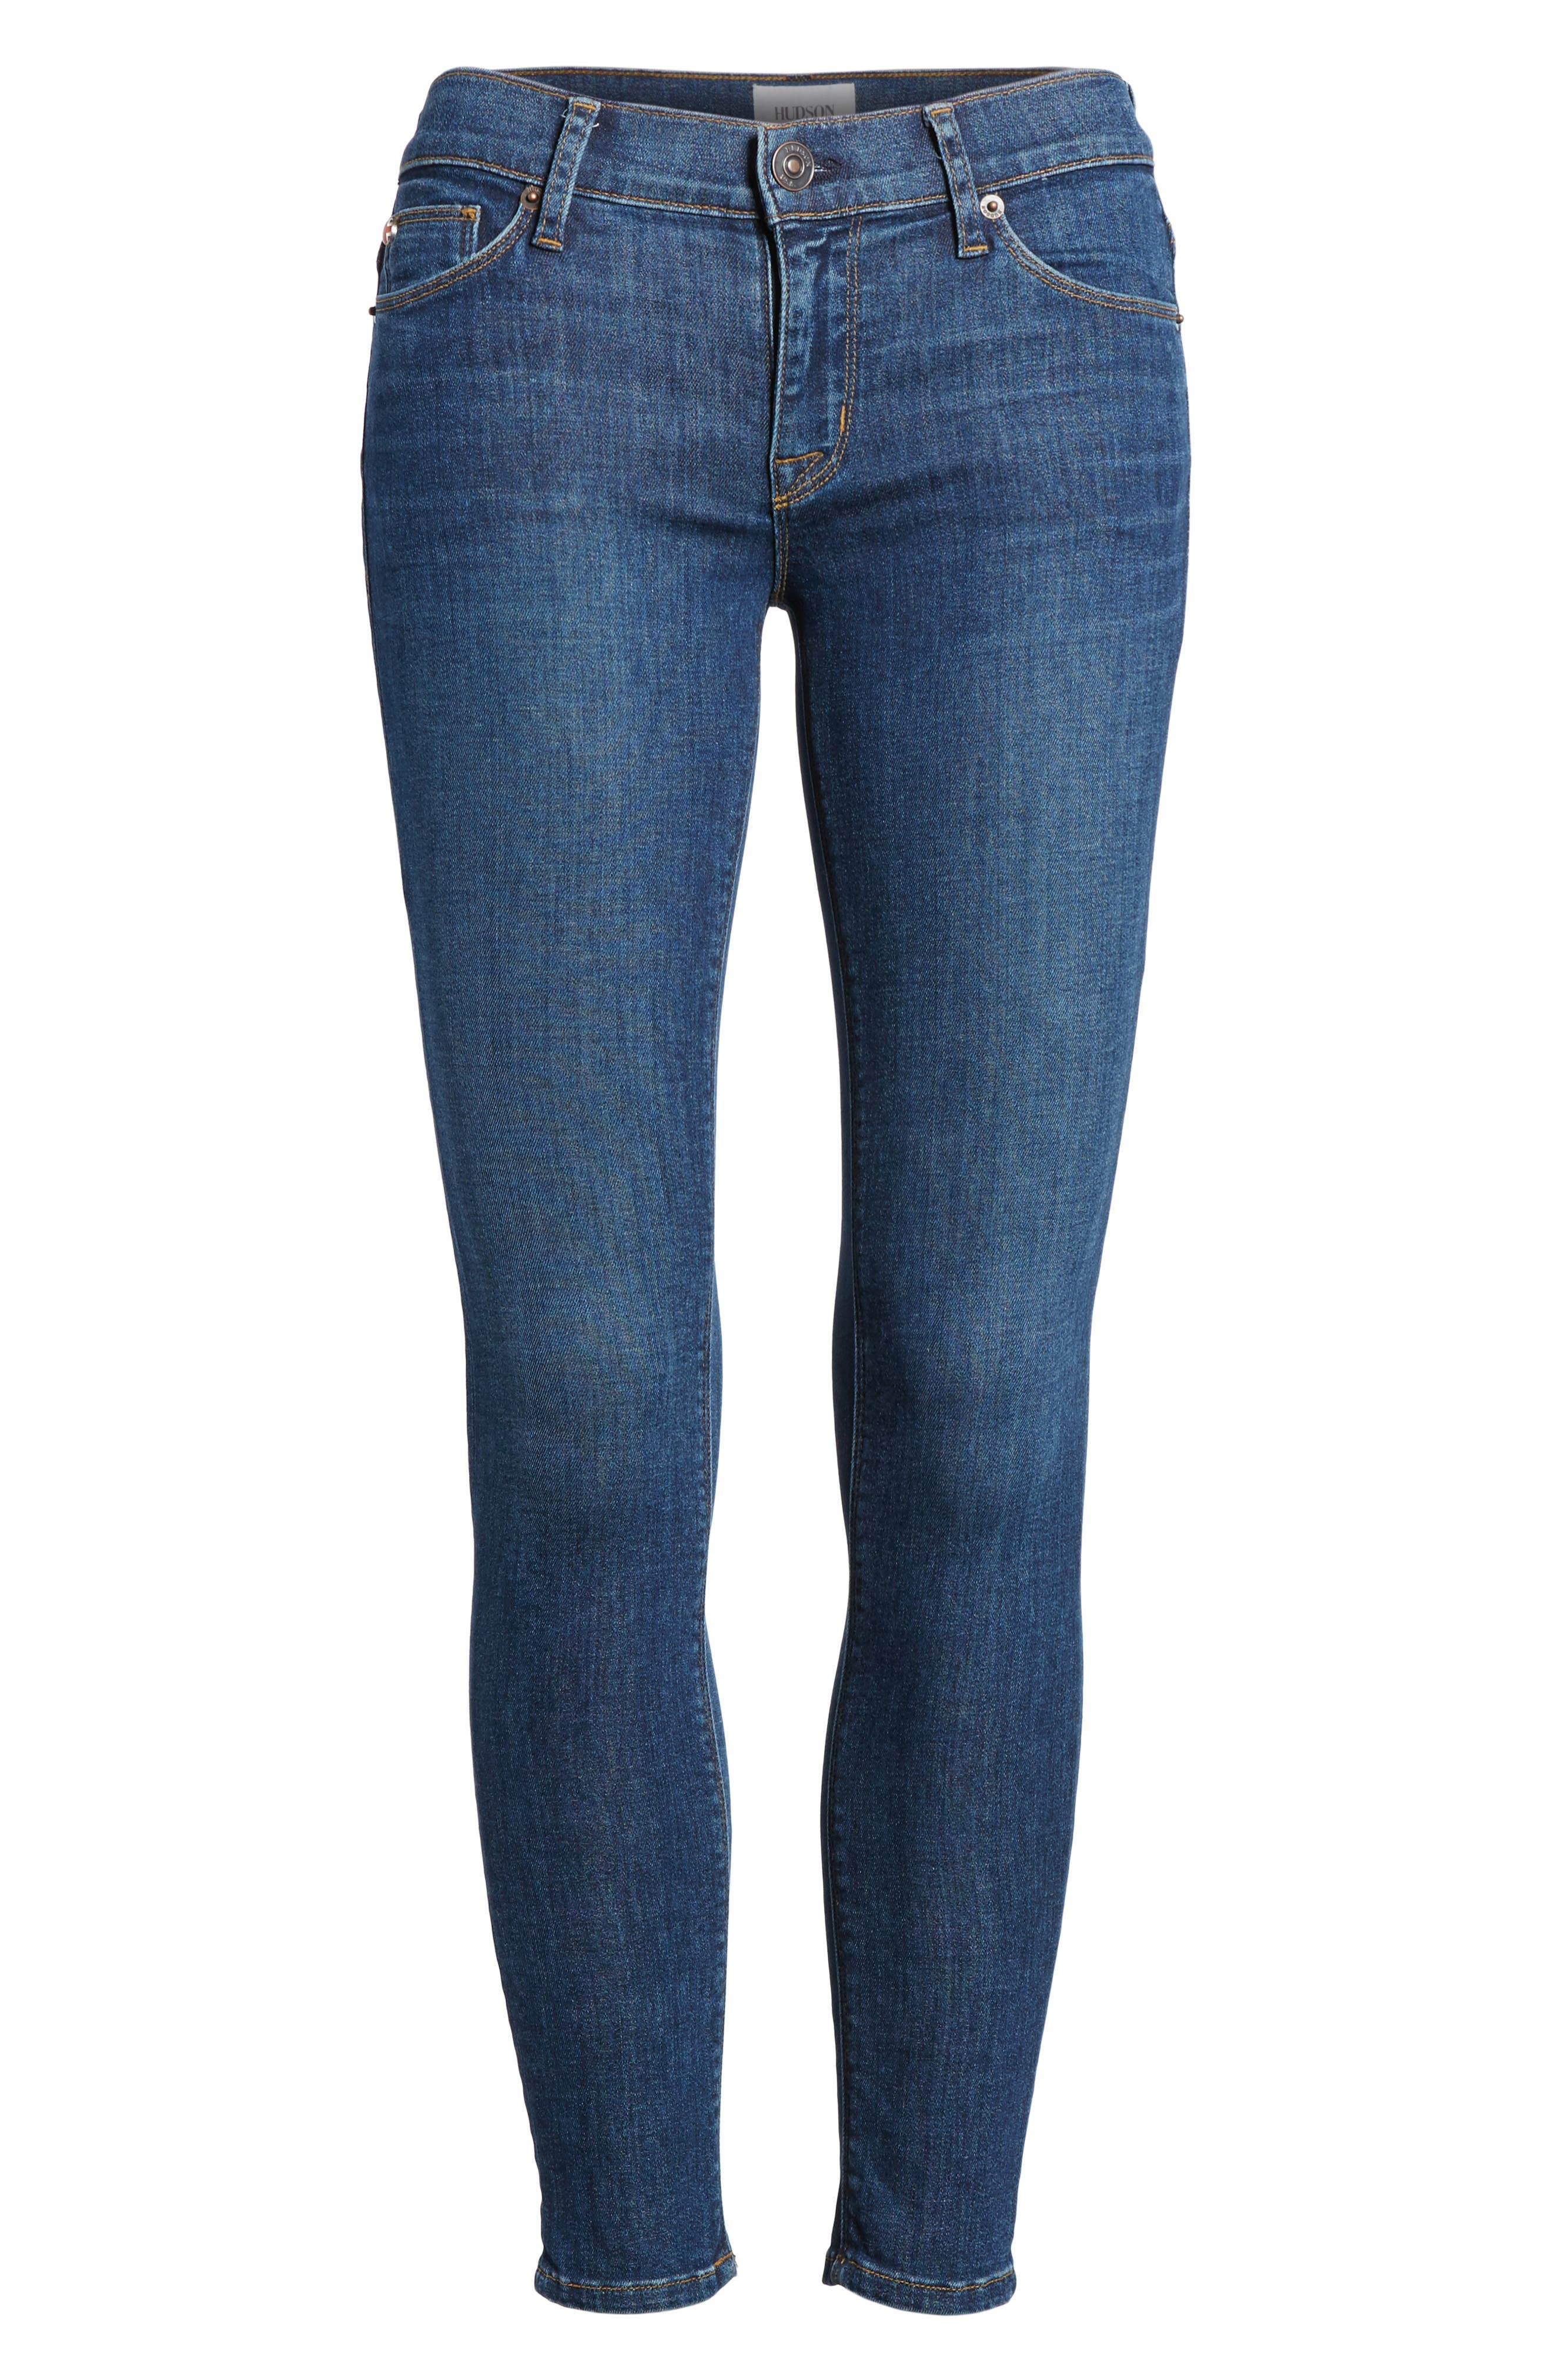 Krista Ankle Super Skinny Jeans,                             Alternate thumbnail 6, color,                             420